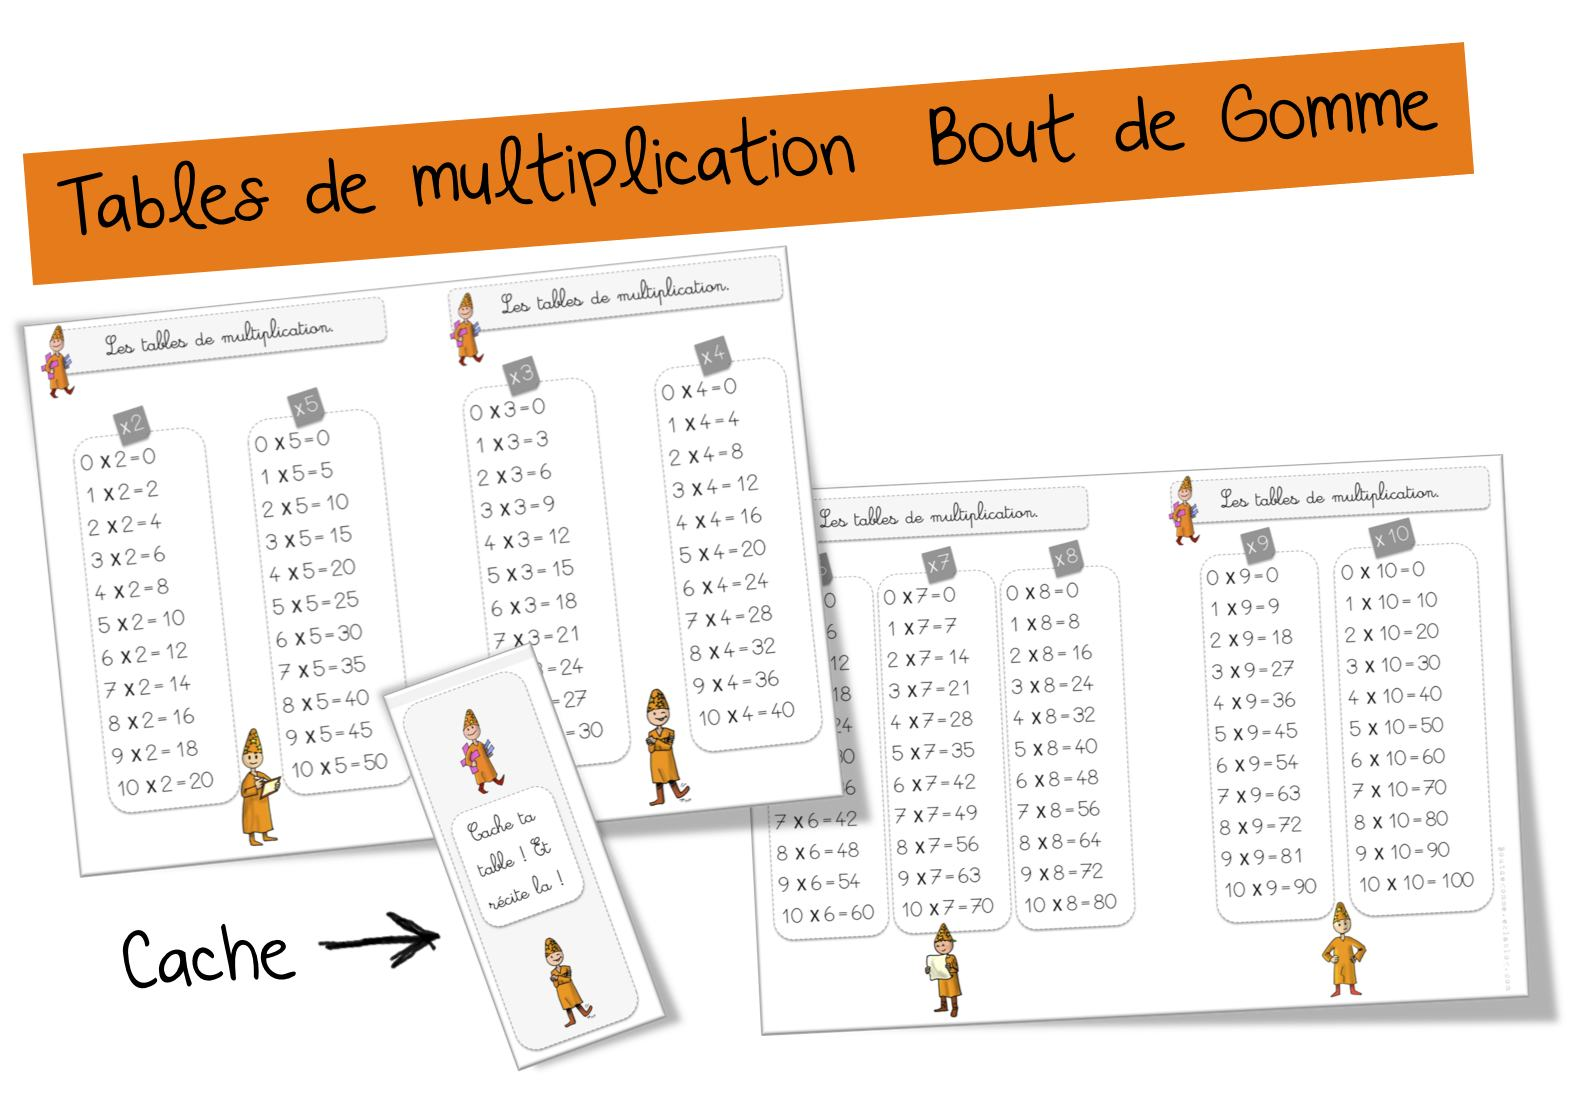 Exercice table multiplication 3 4 5 fiches d exercices - Reviser les tables de multiplications ce2 ...